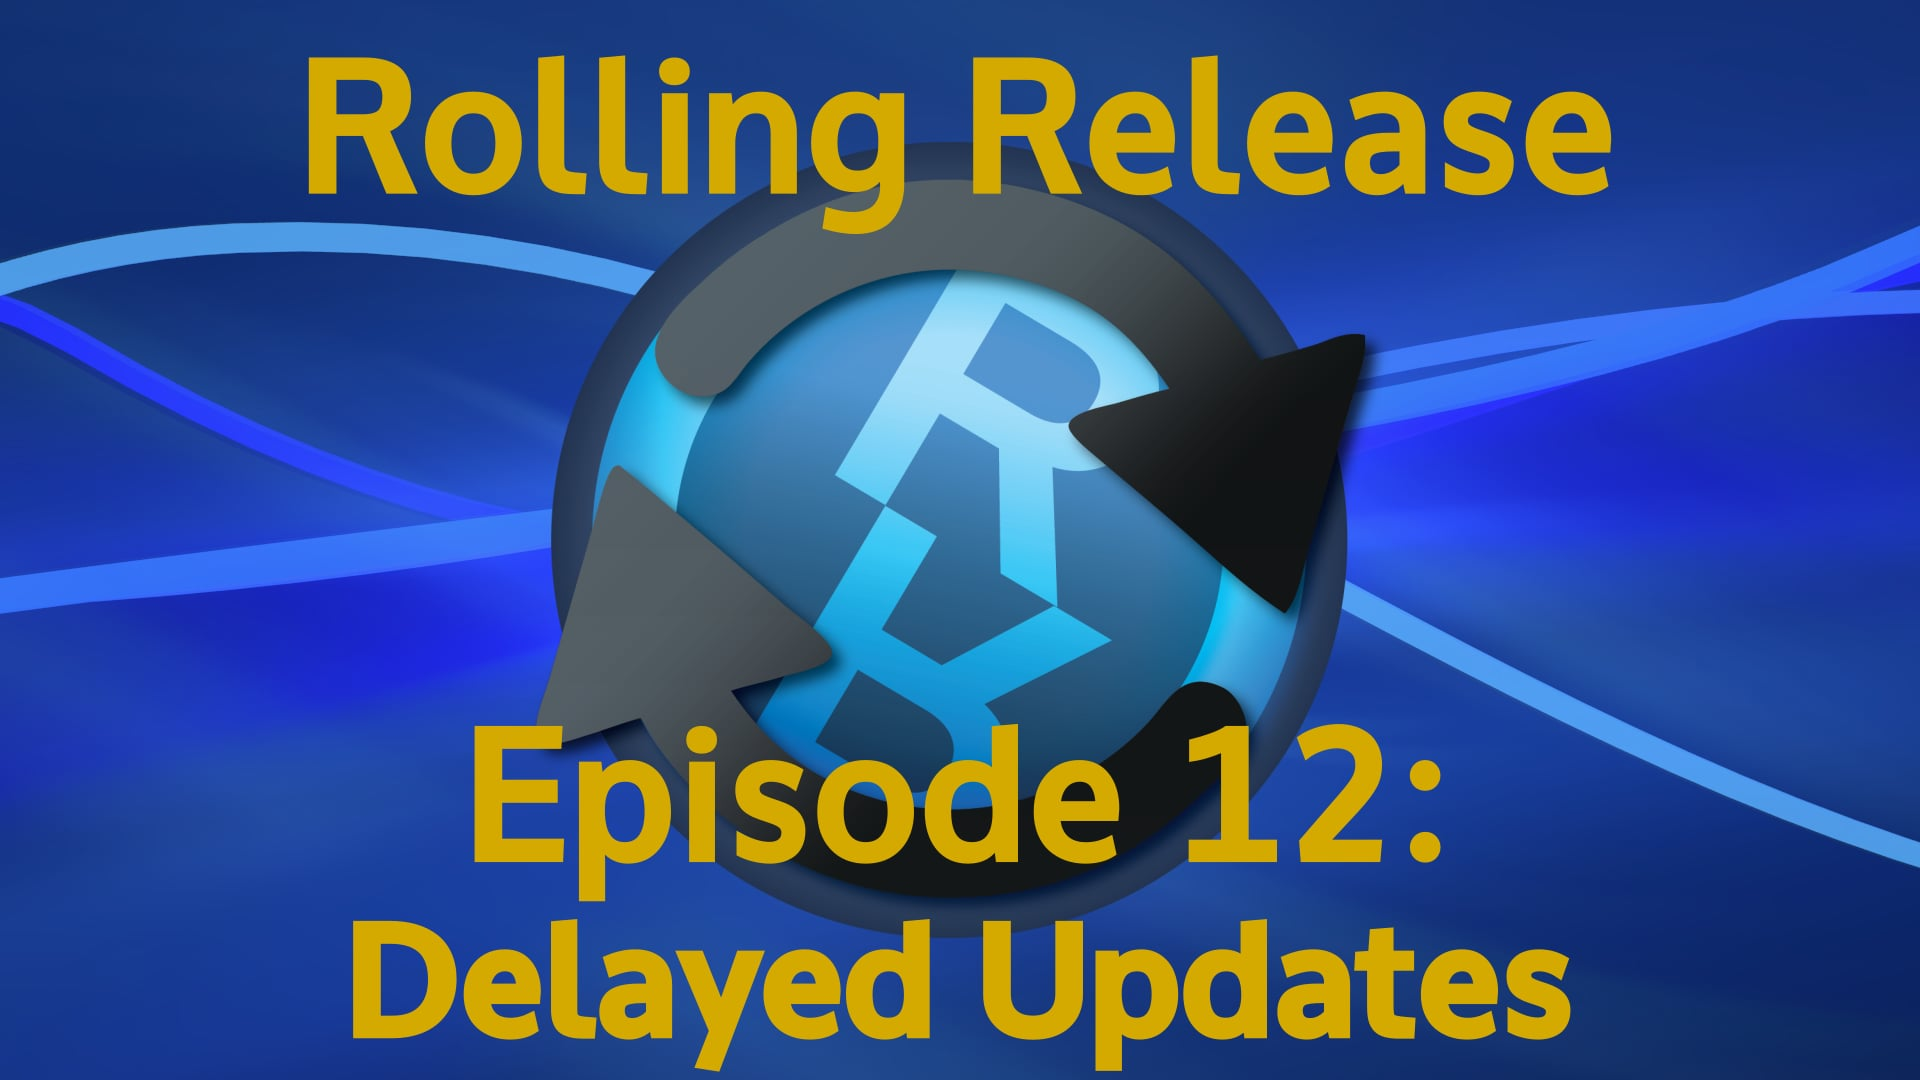 Delayed Updates - Rolling Release #12